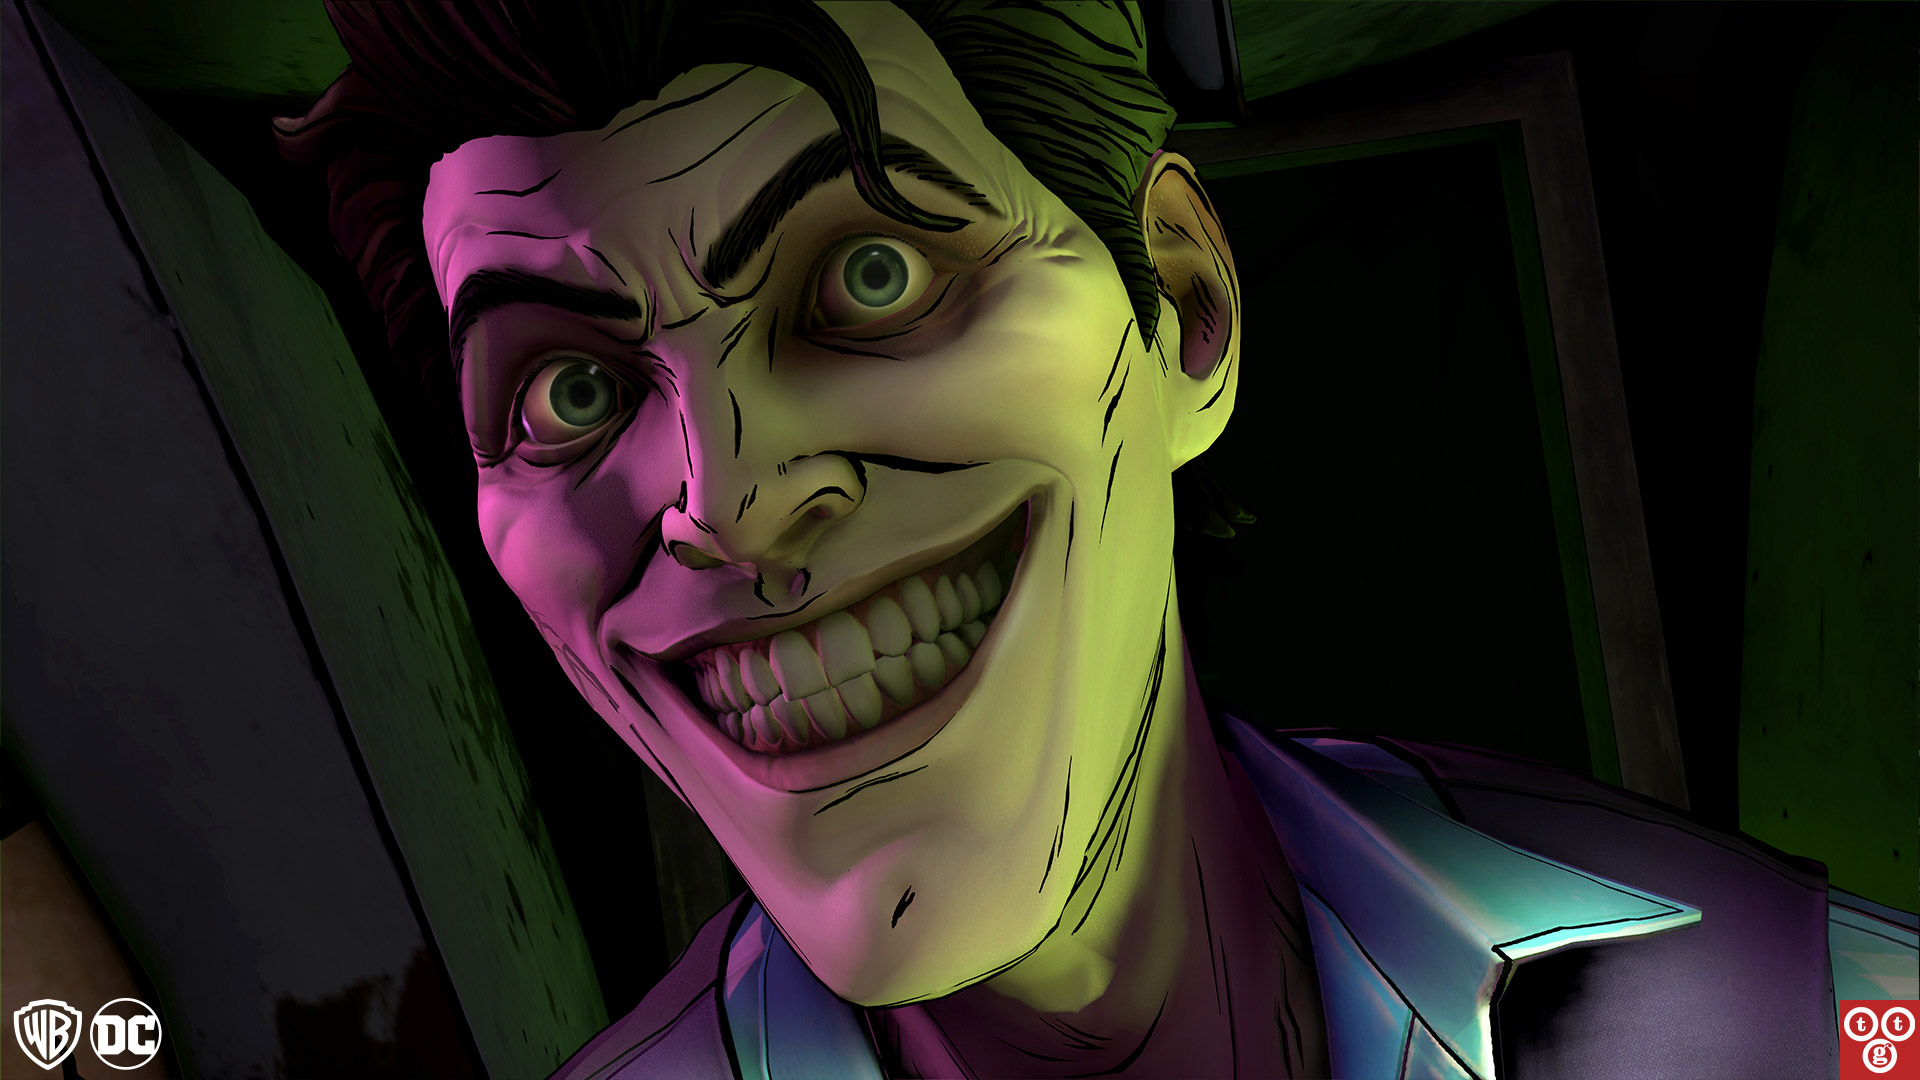 Free Batman: The Enemy Within - The Telltale Series Wallpaper in 1920x1080